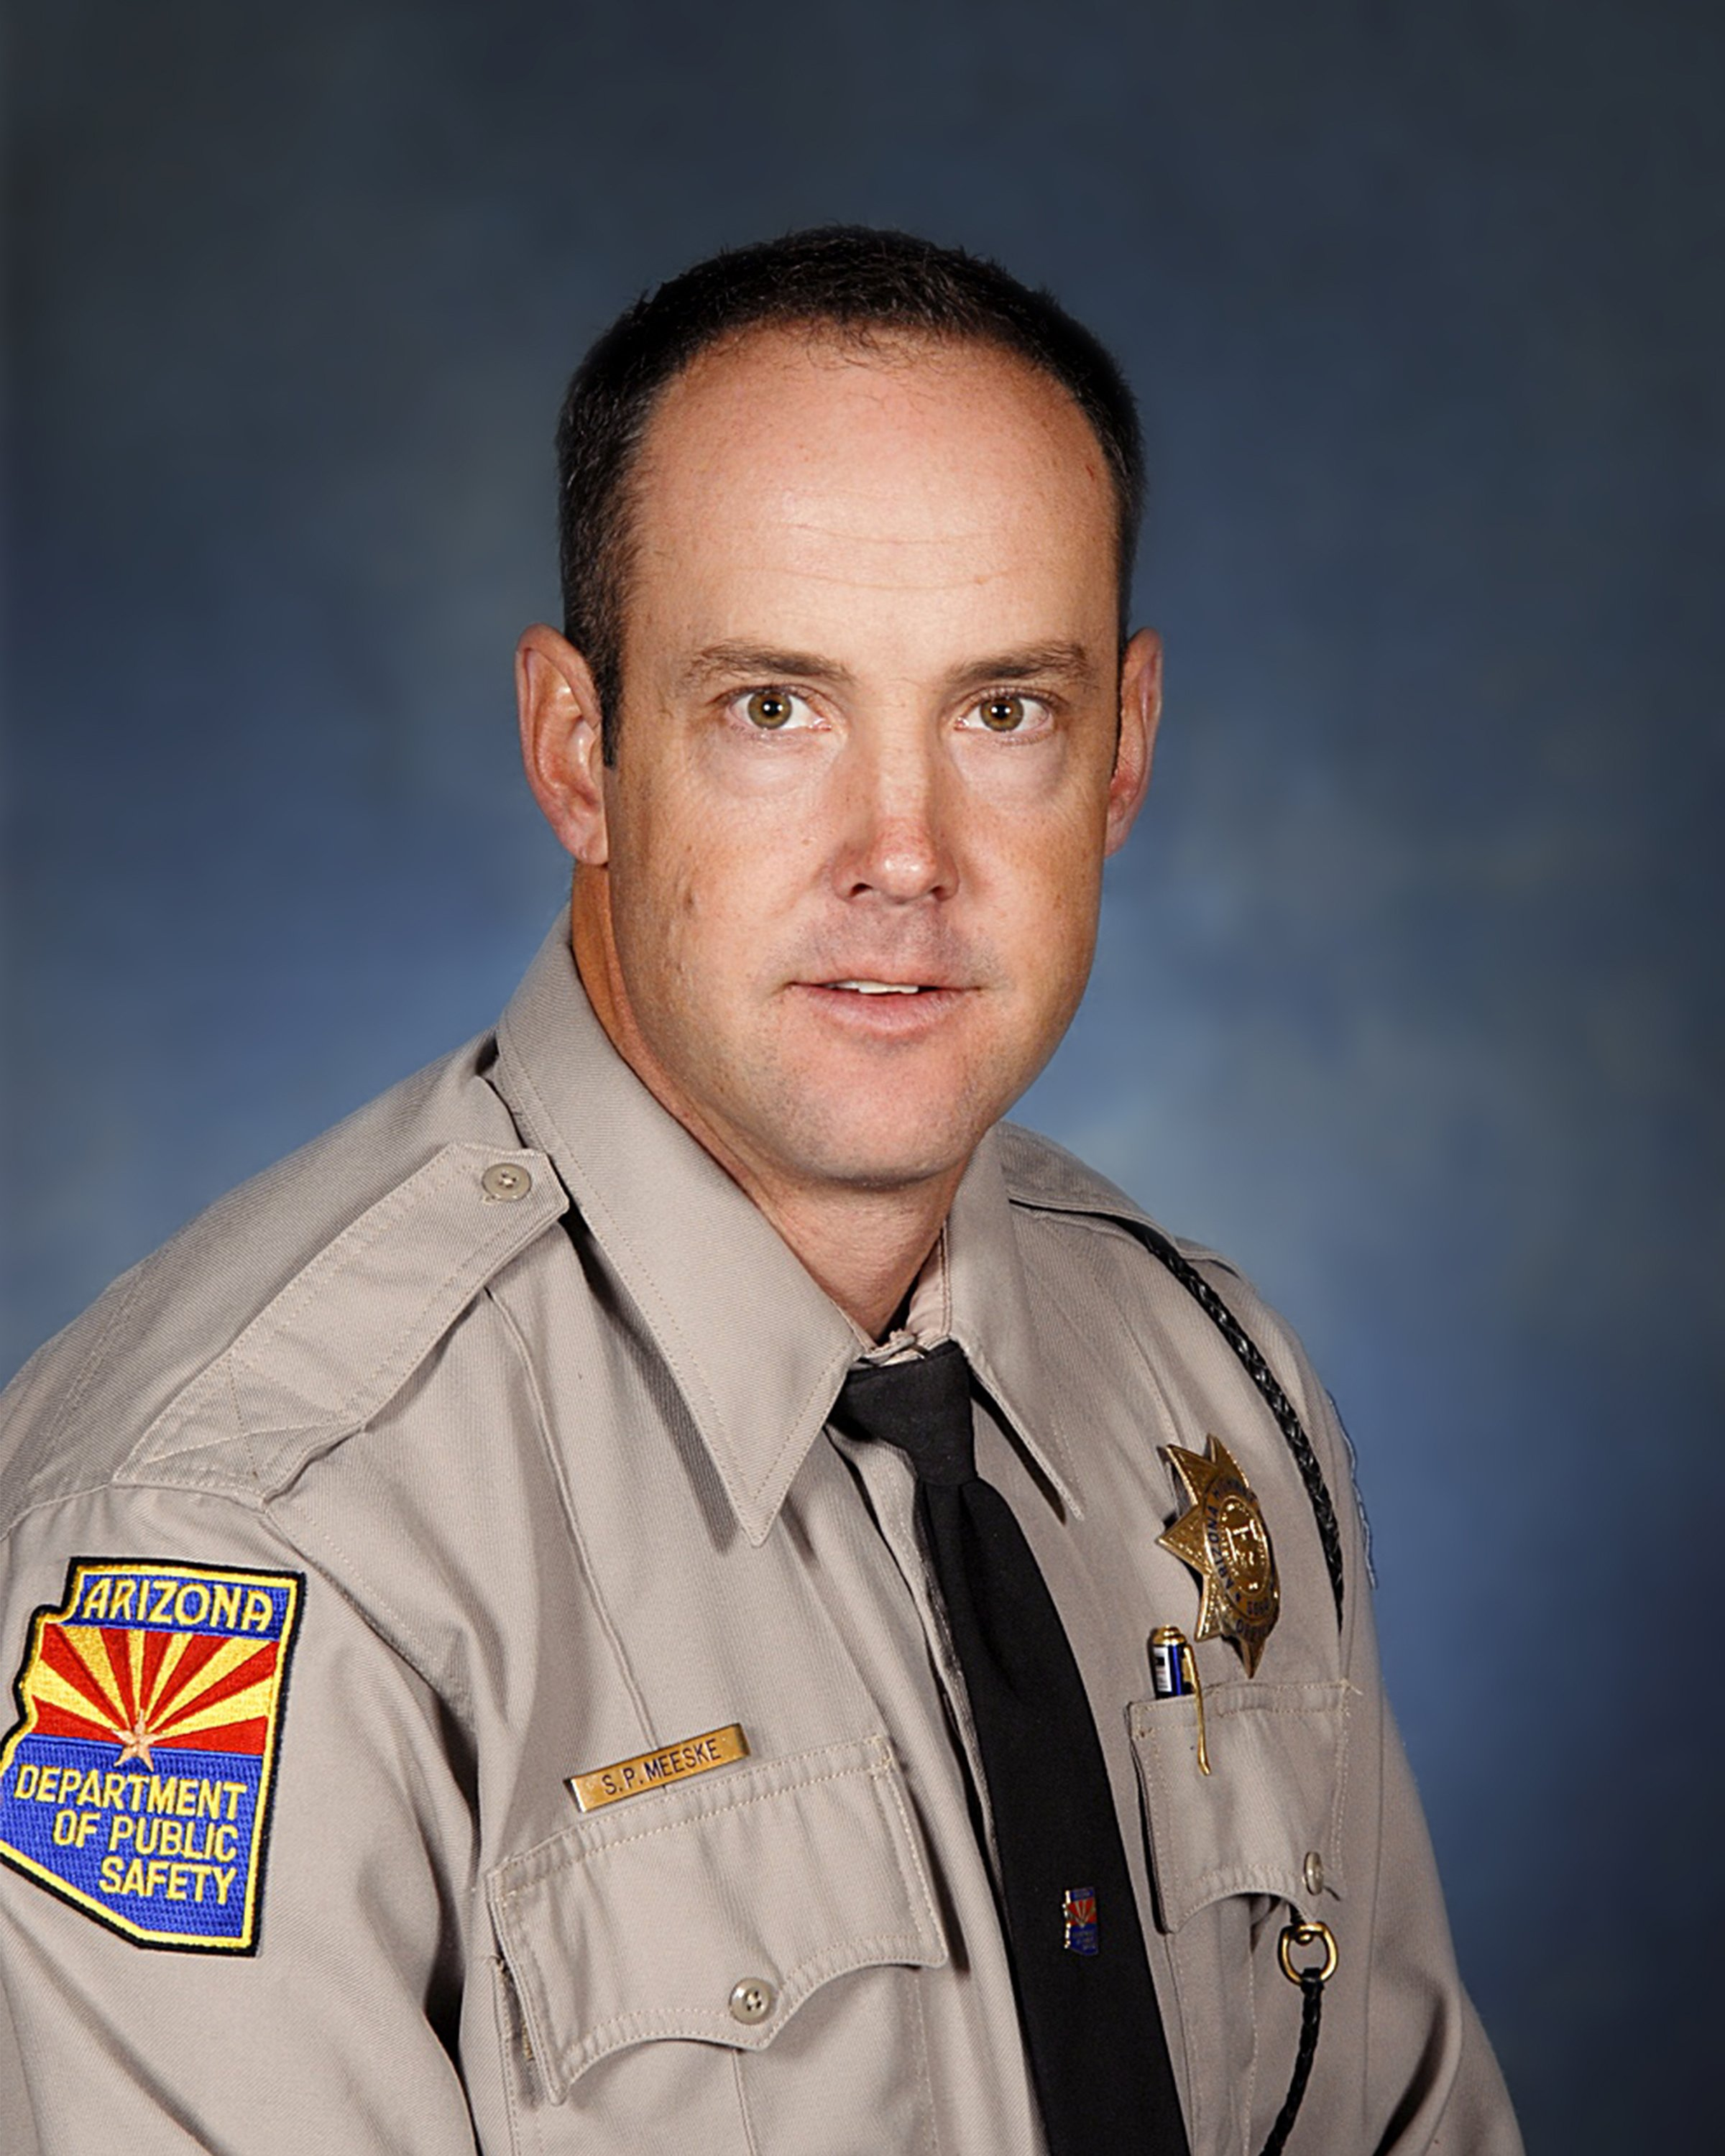 DPS Officer Seth Meeske (Source: Arizona Dept. of Public Safety)